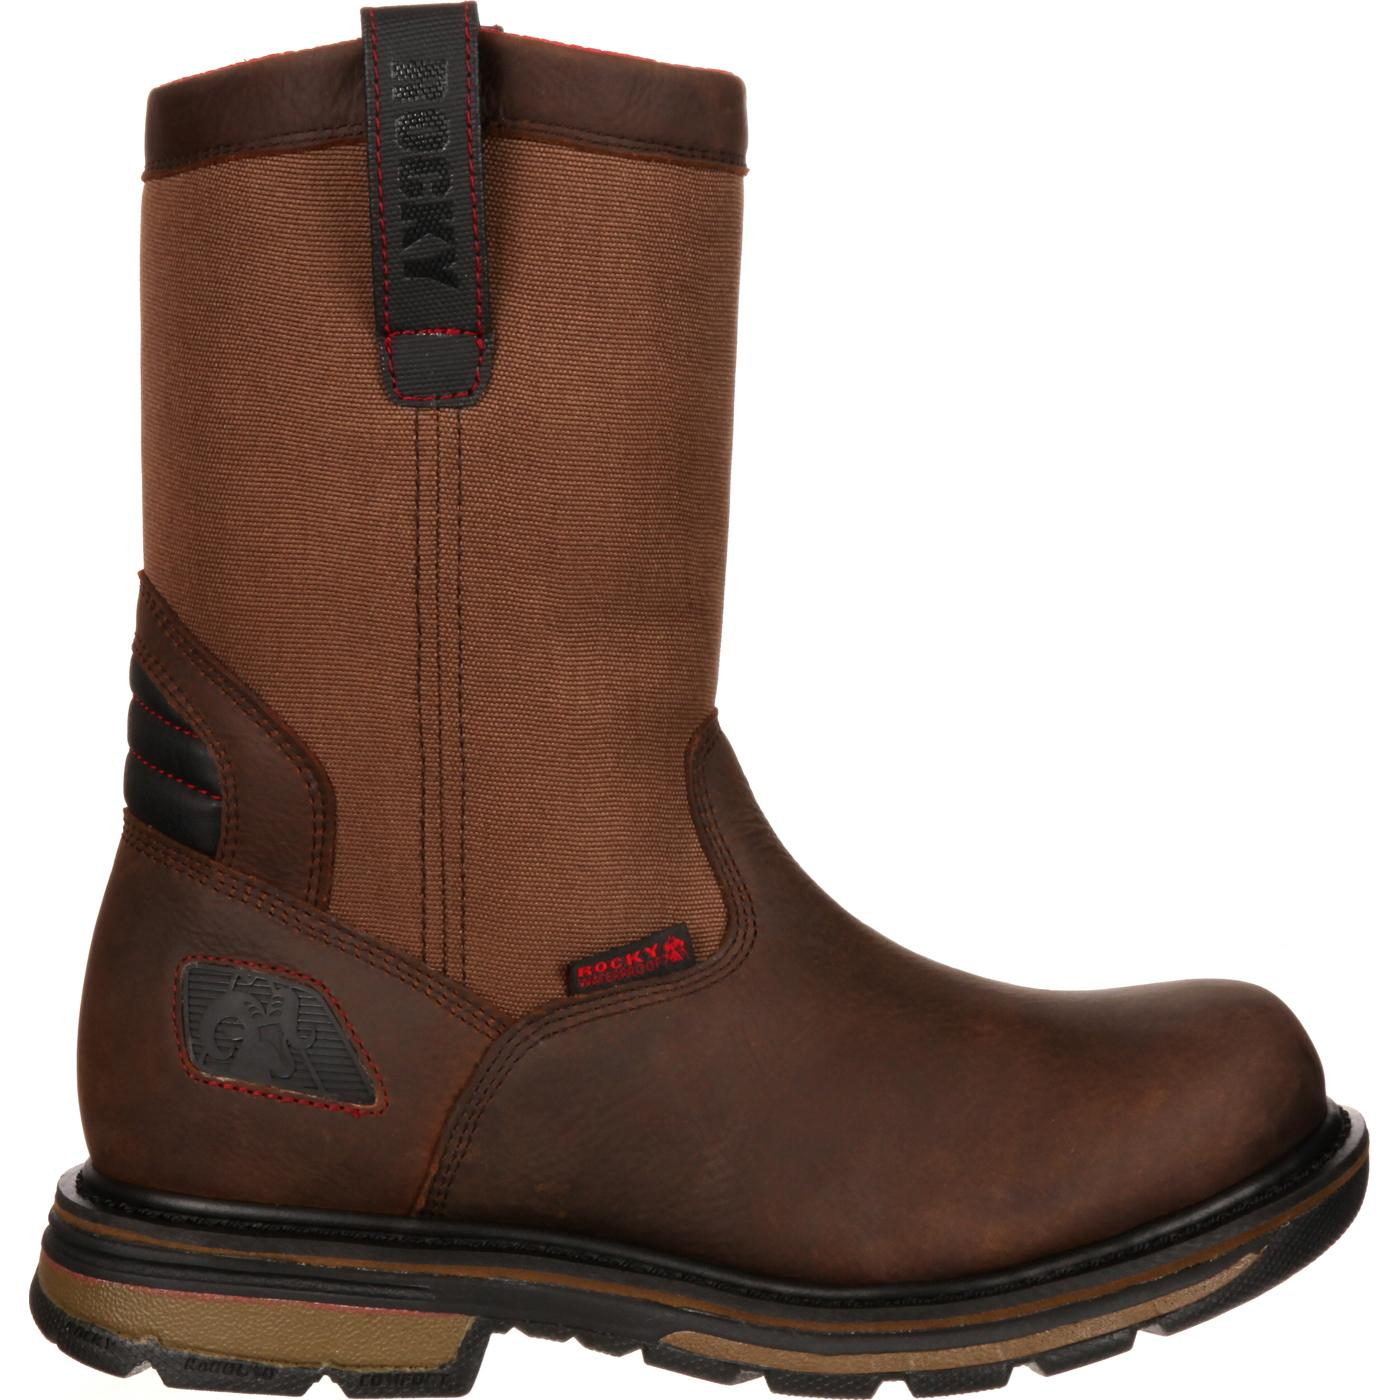 a520f9d3004 Rocky Hauler Composite Toe Waterproof Pull-On Work Boot